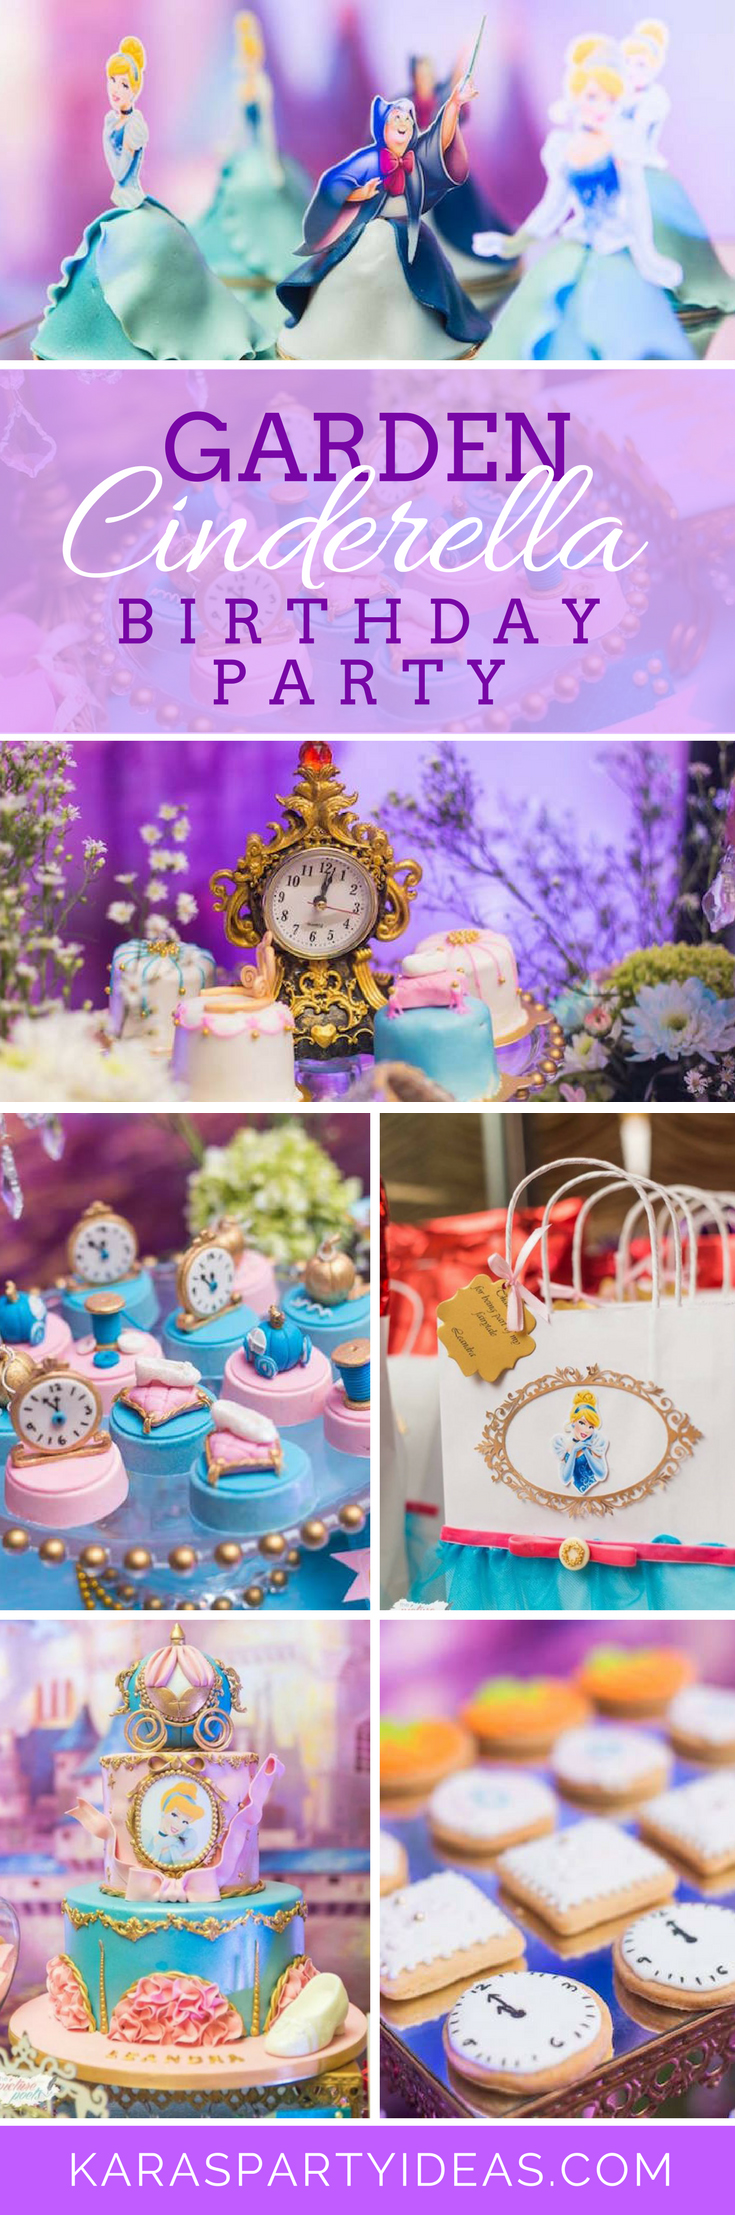 Garden Cinderella Birthday Party via Kara's Party Ideas - KarasPartyIdeas.com